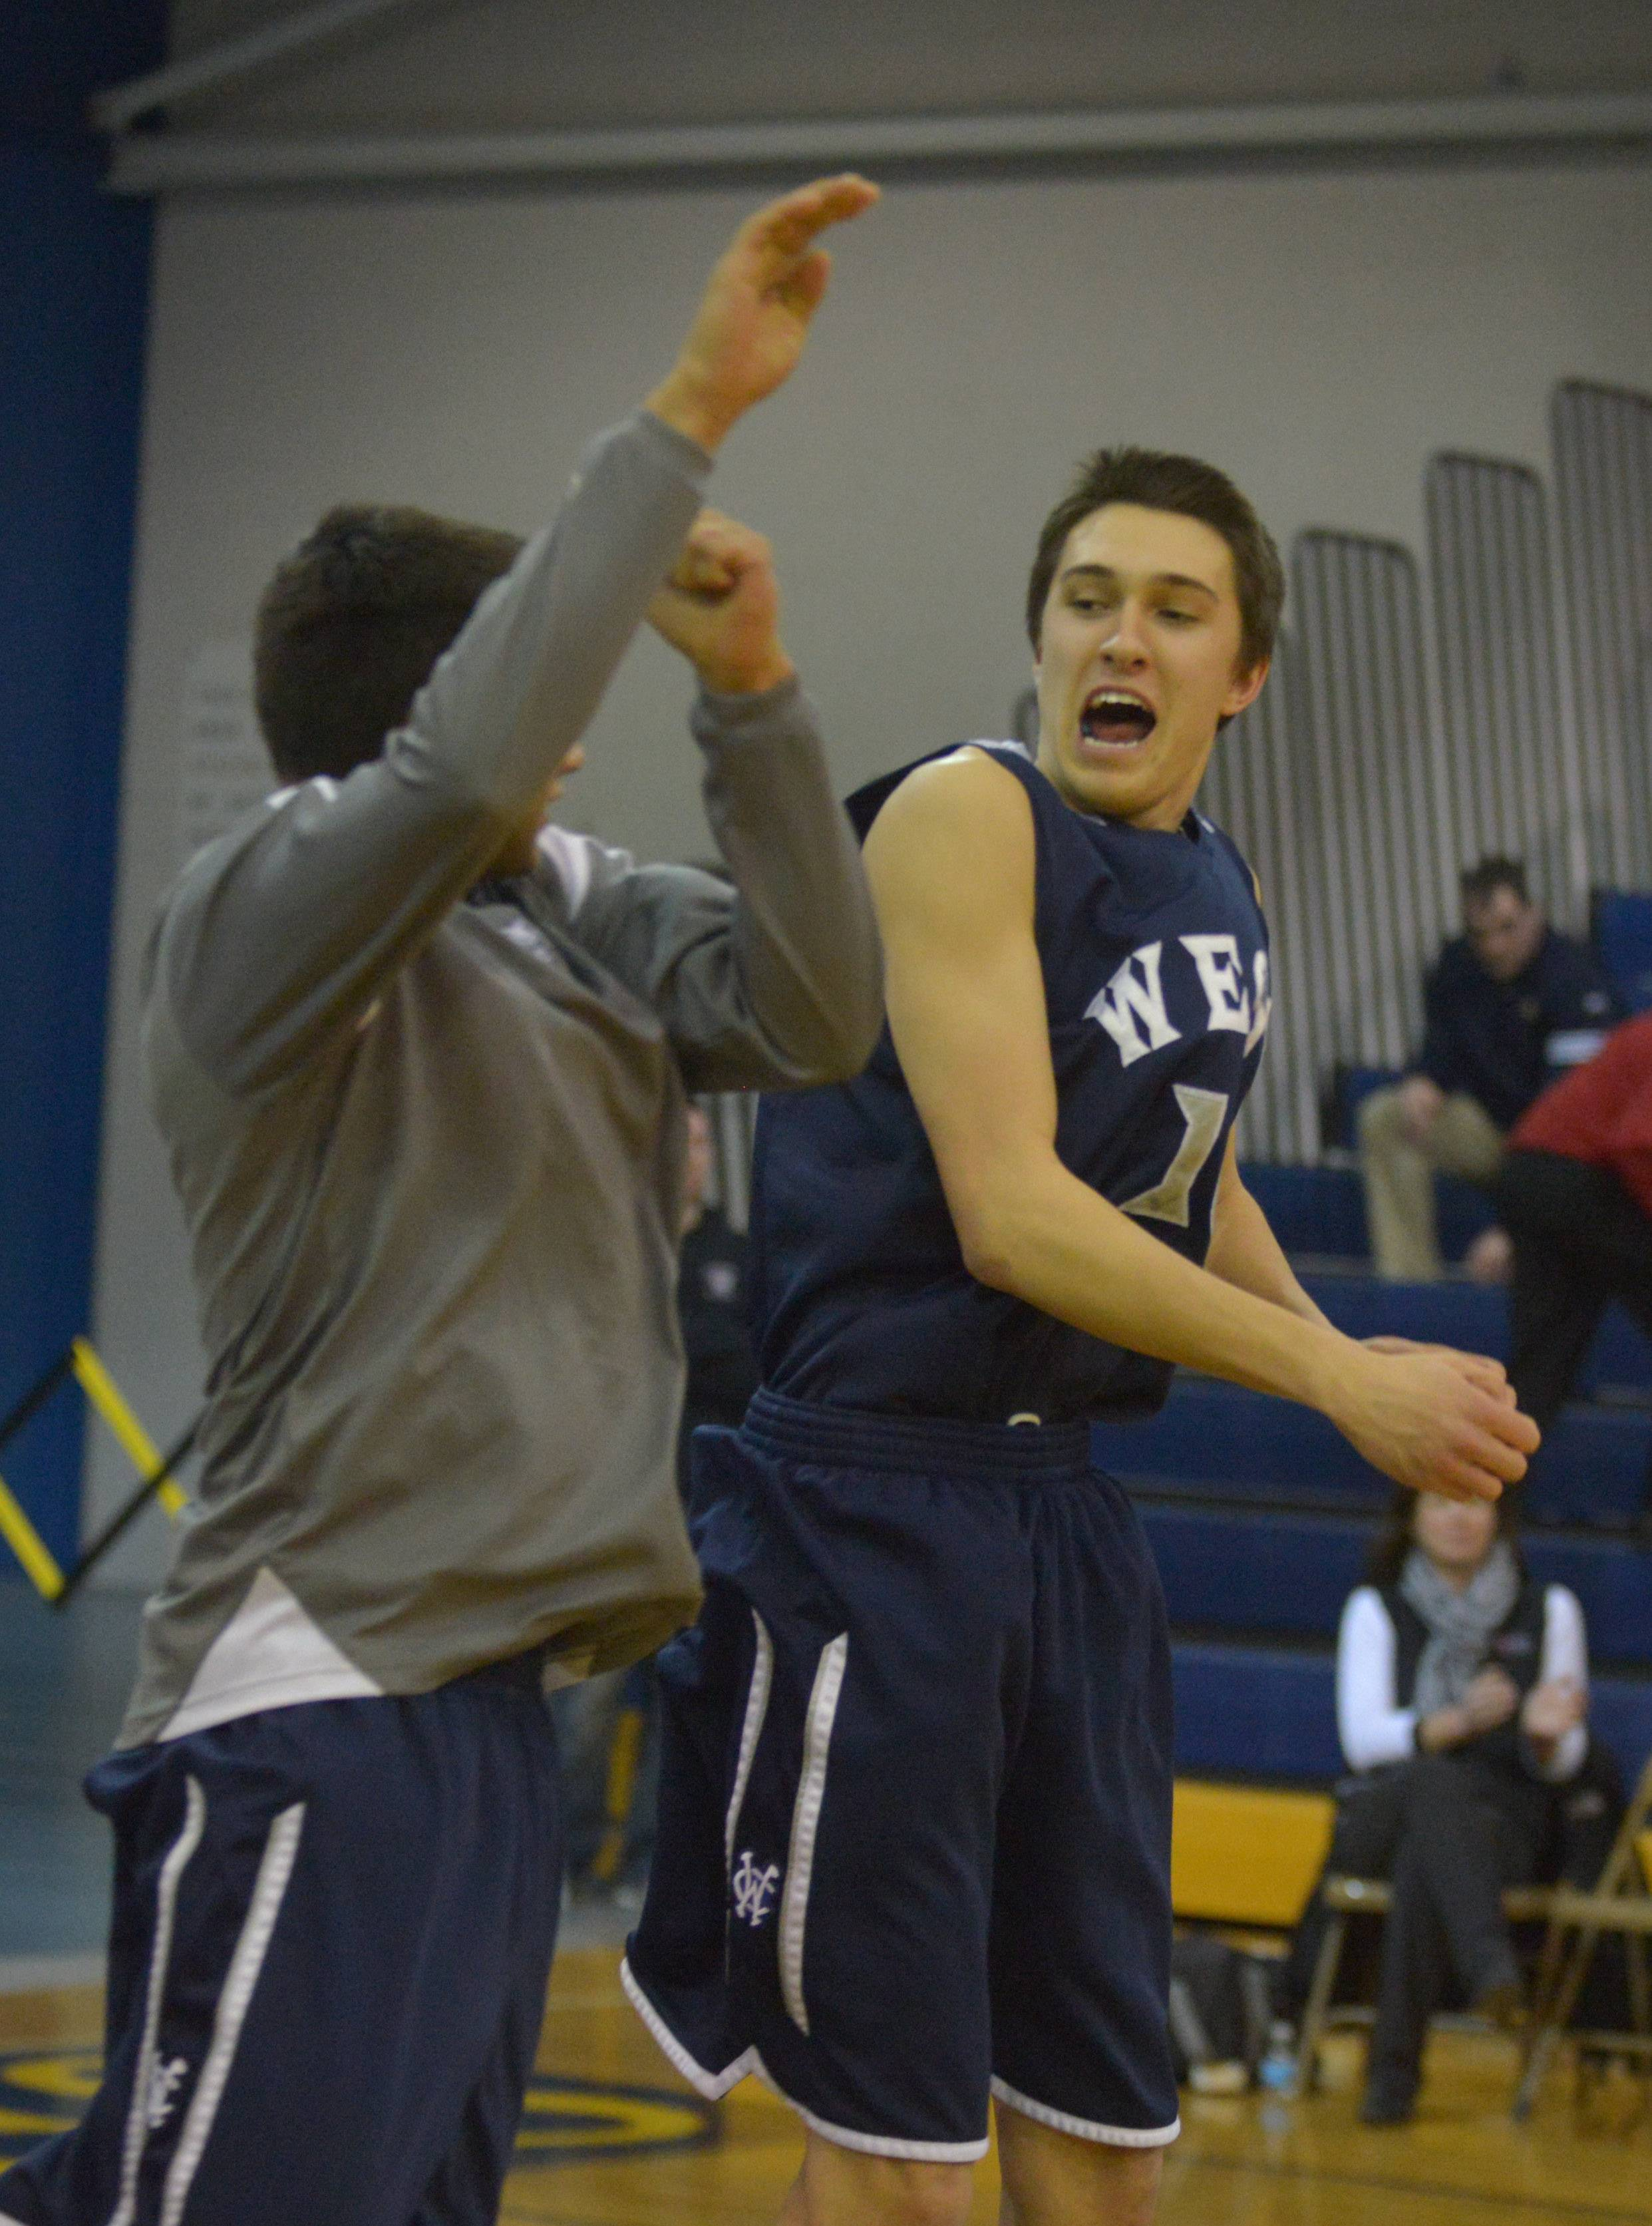 West Chicago played Glenbard North in a Class 4A boys basketball regional semifinal game Tuesday, March 4 at Leyden Twp. High School in Franklin Park.